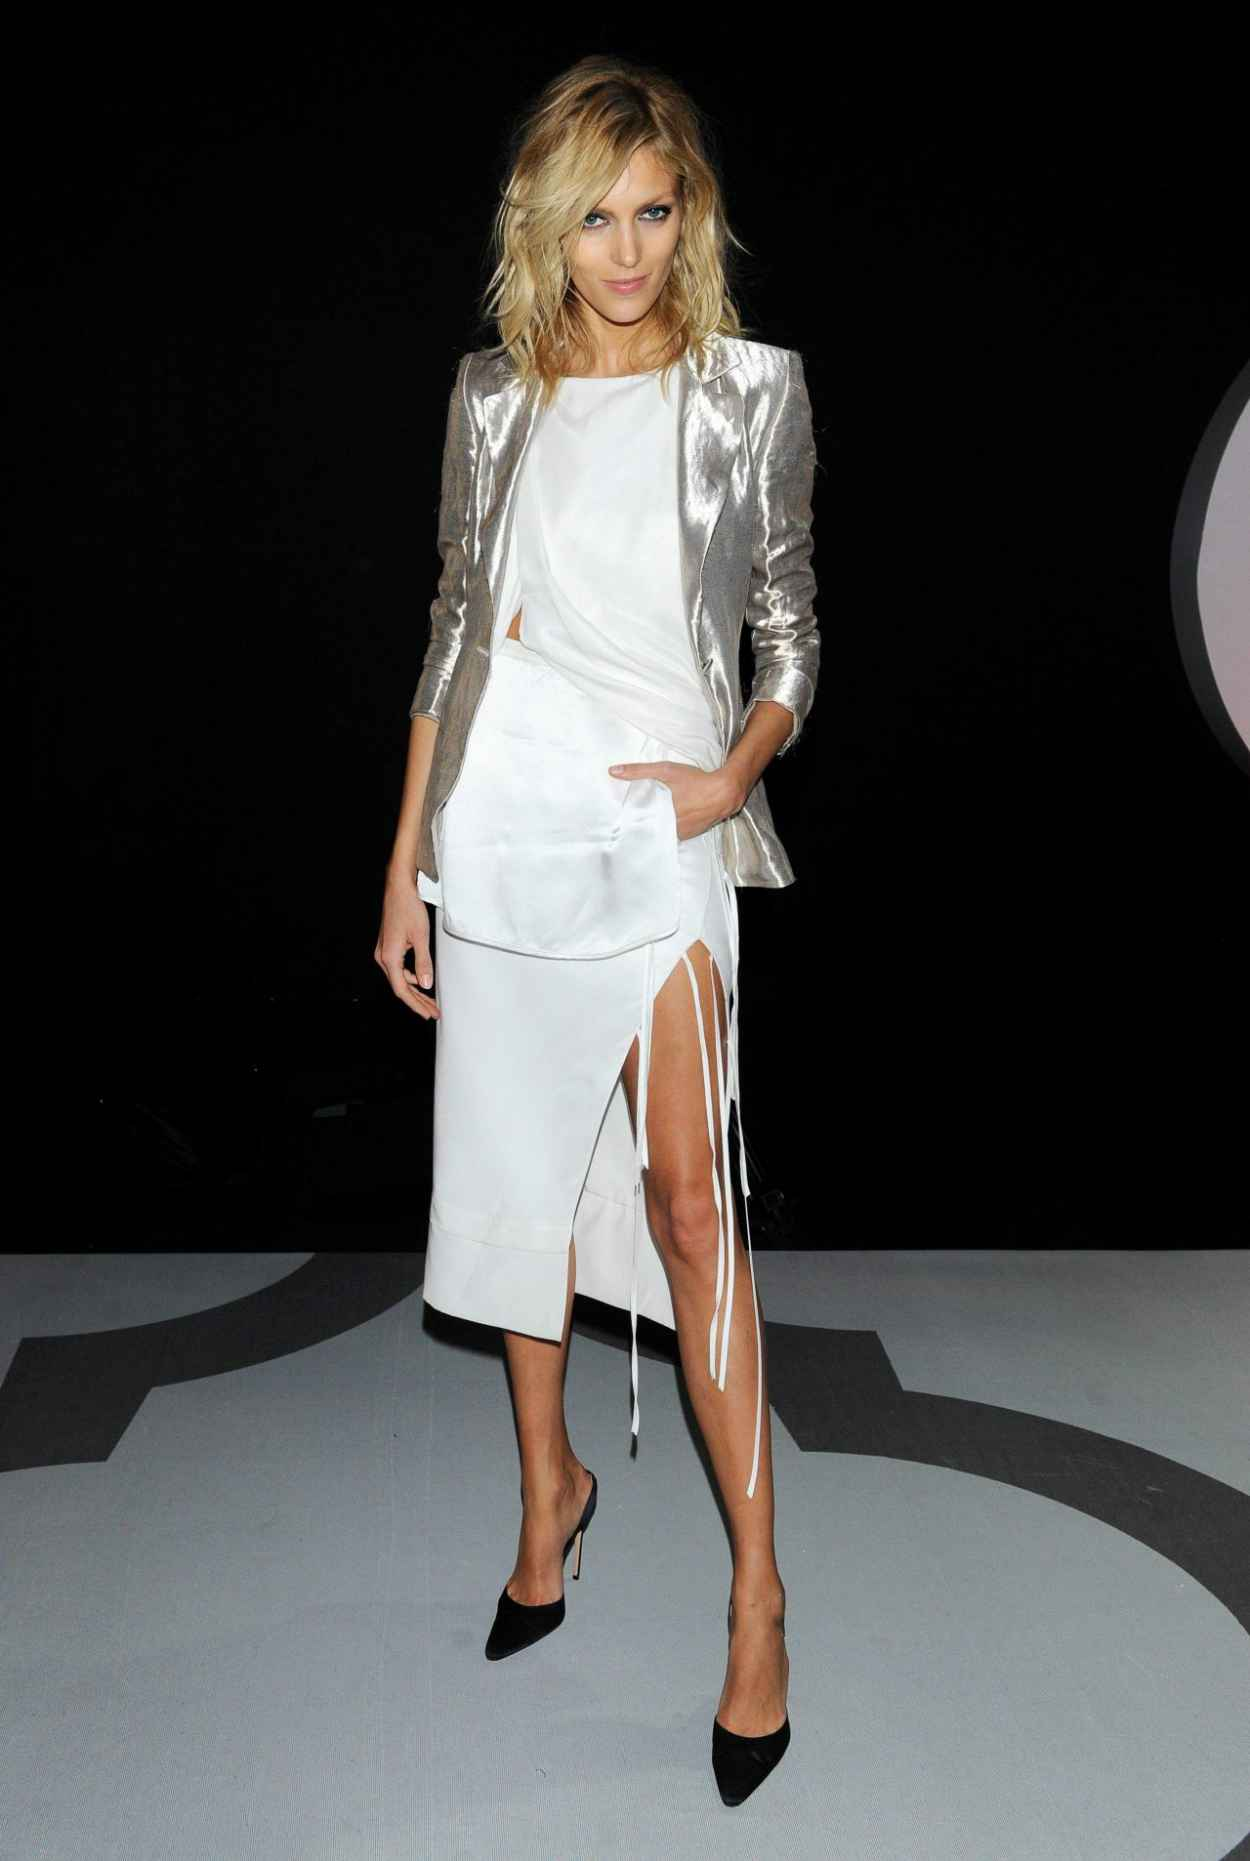 Anja Rubik - TVN TV Show in Warsaw - February 2015-1